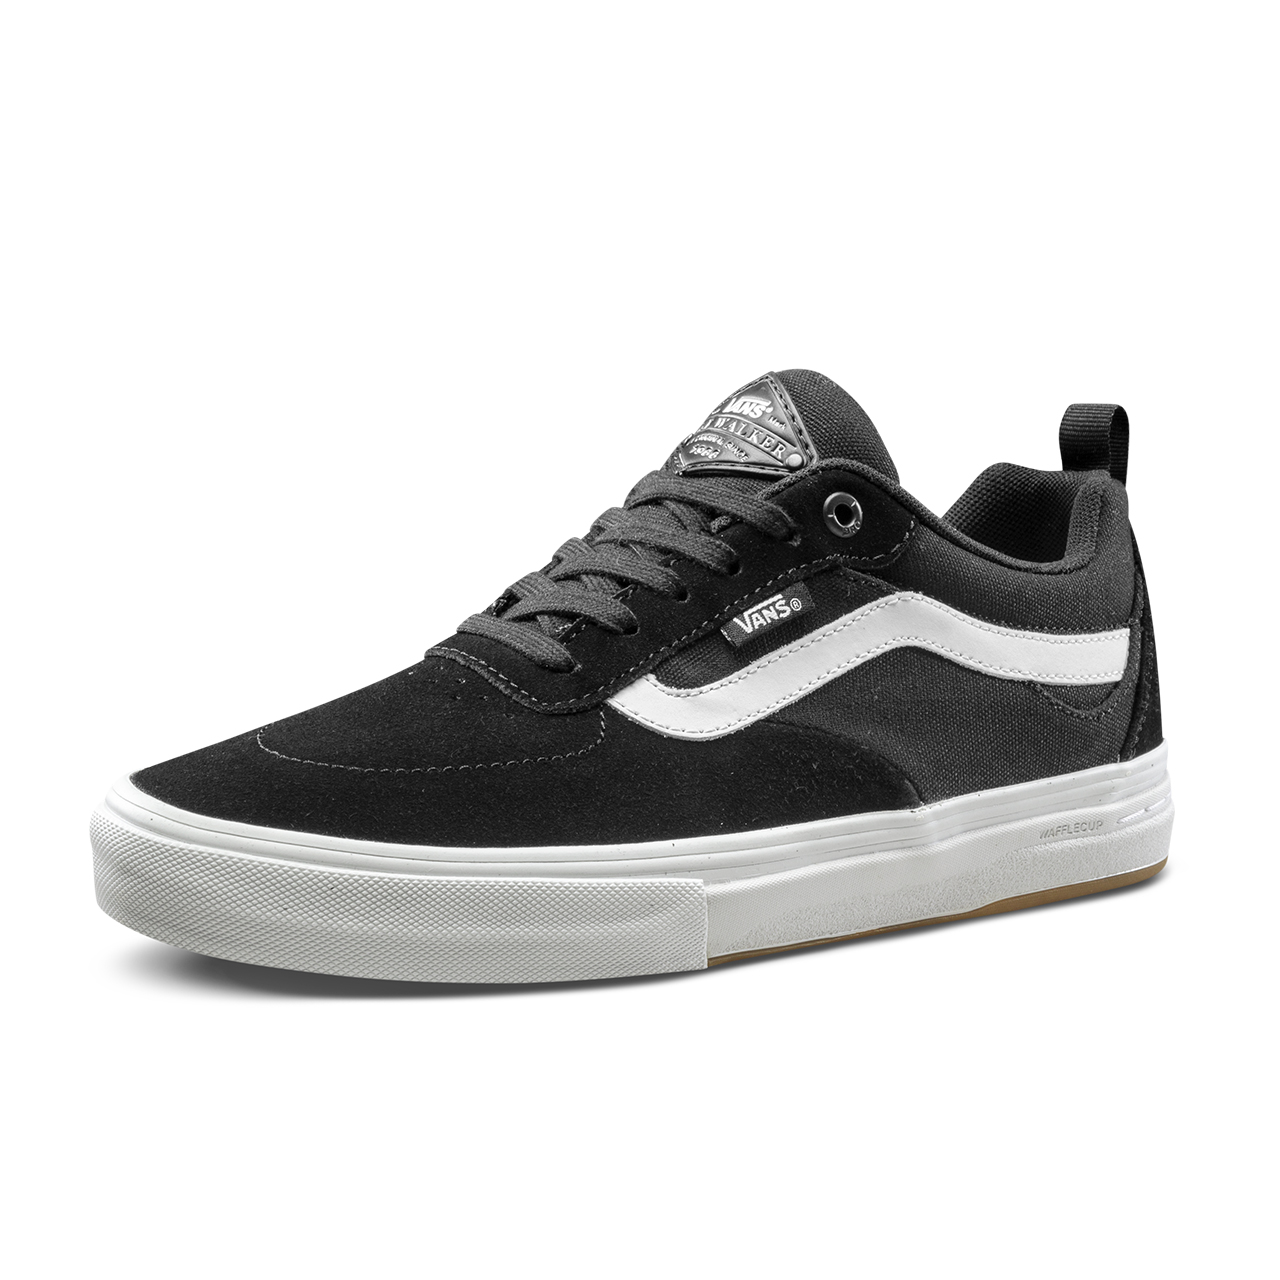 61b5187aa45 Vans Vans official men s black low cut skate shoes A2XSGY28